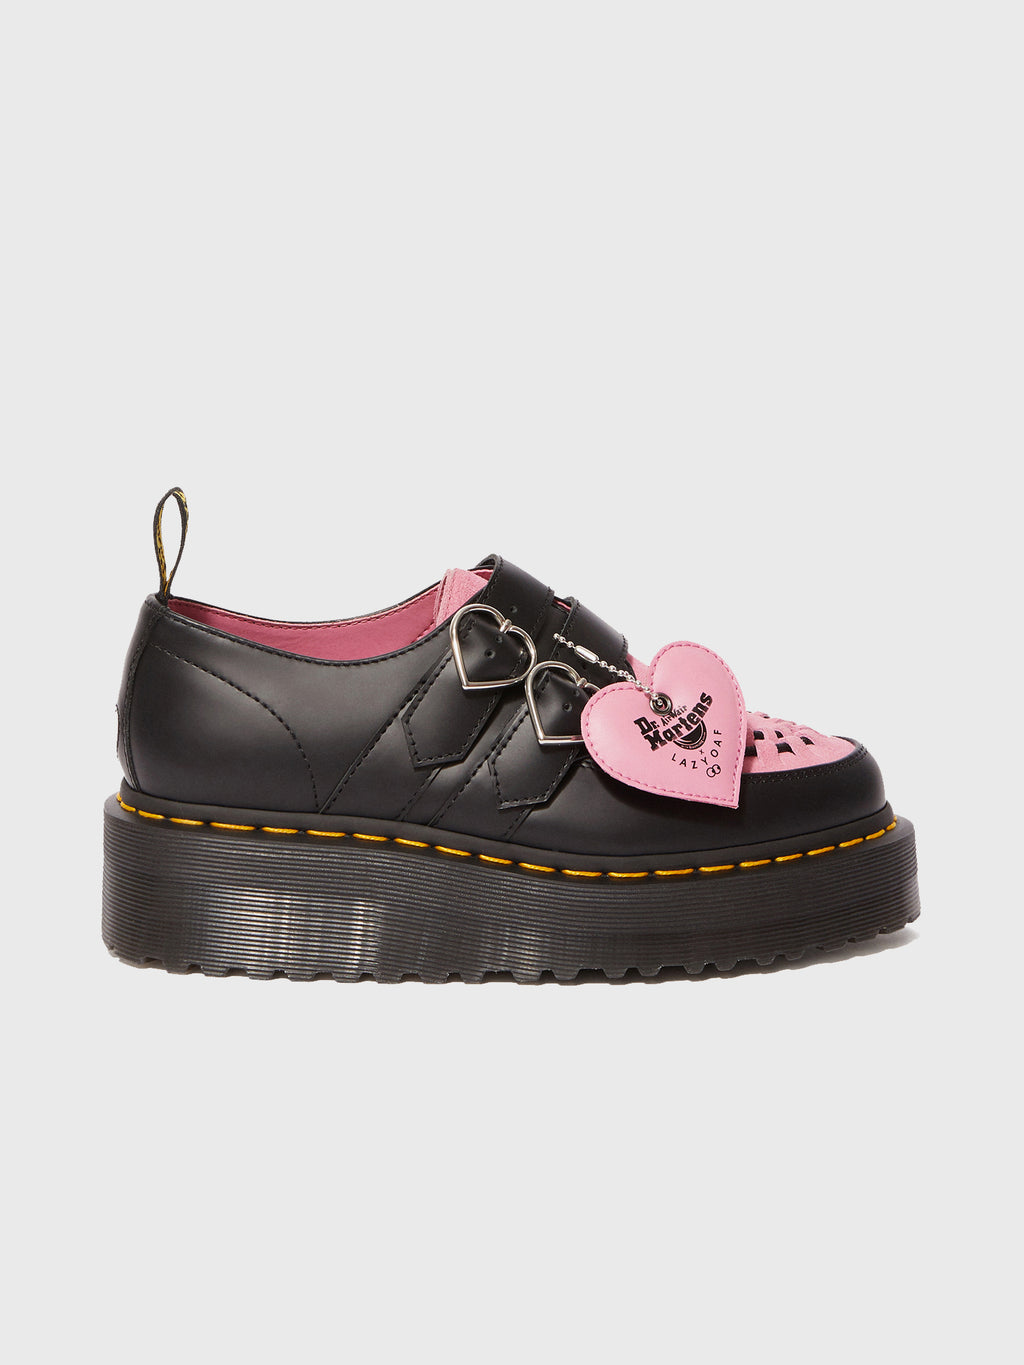 Dr. Martens x Lazy Oaf Rose Buckle Creeper